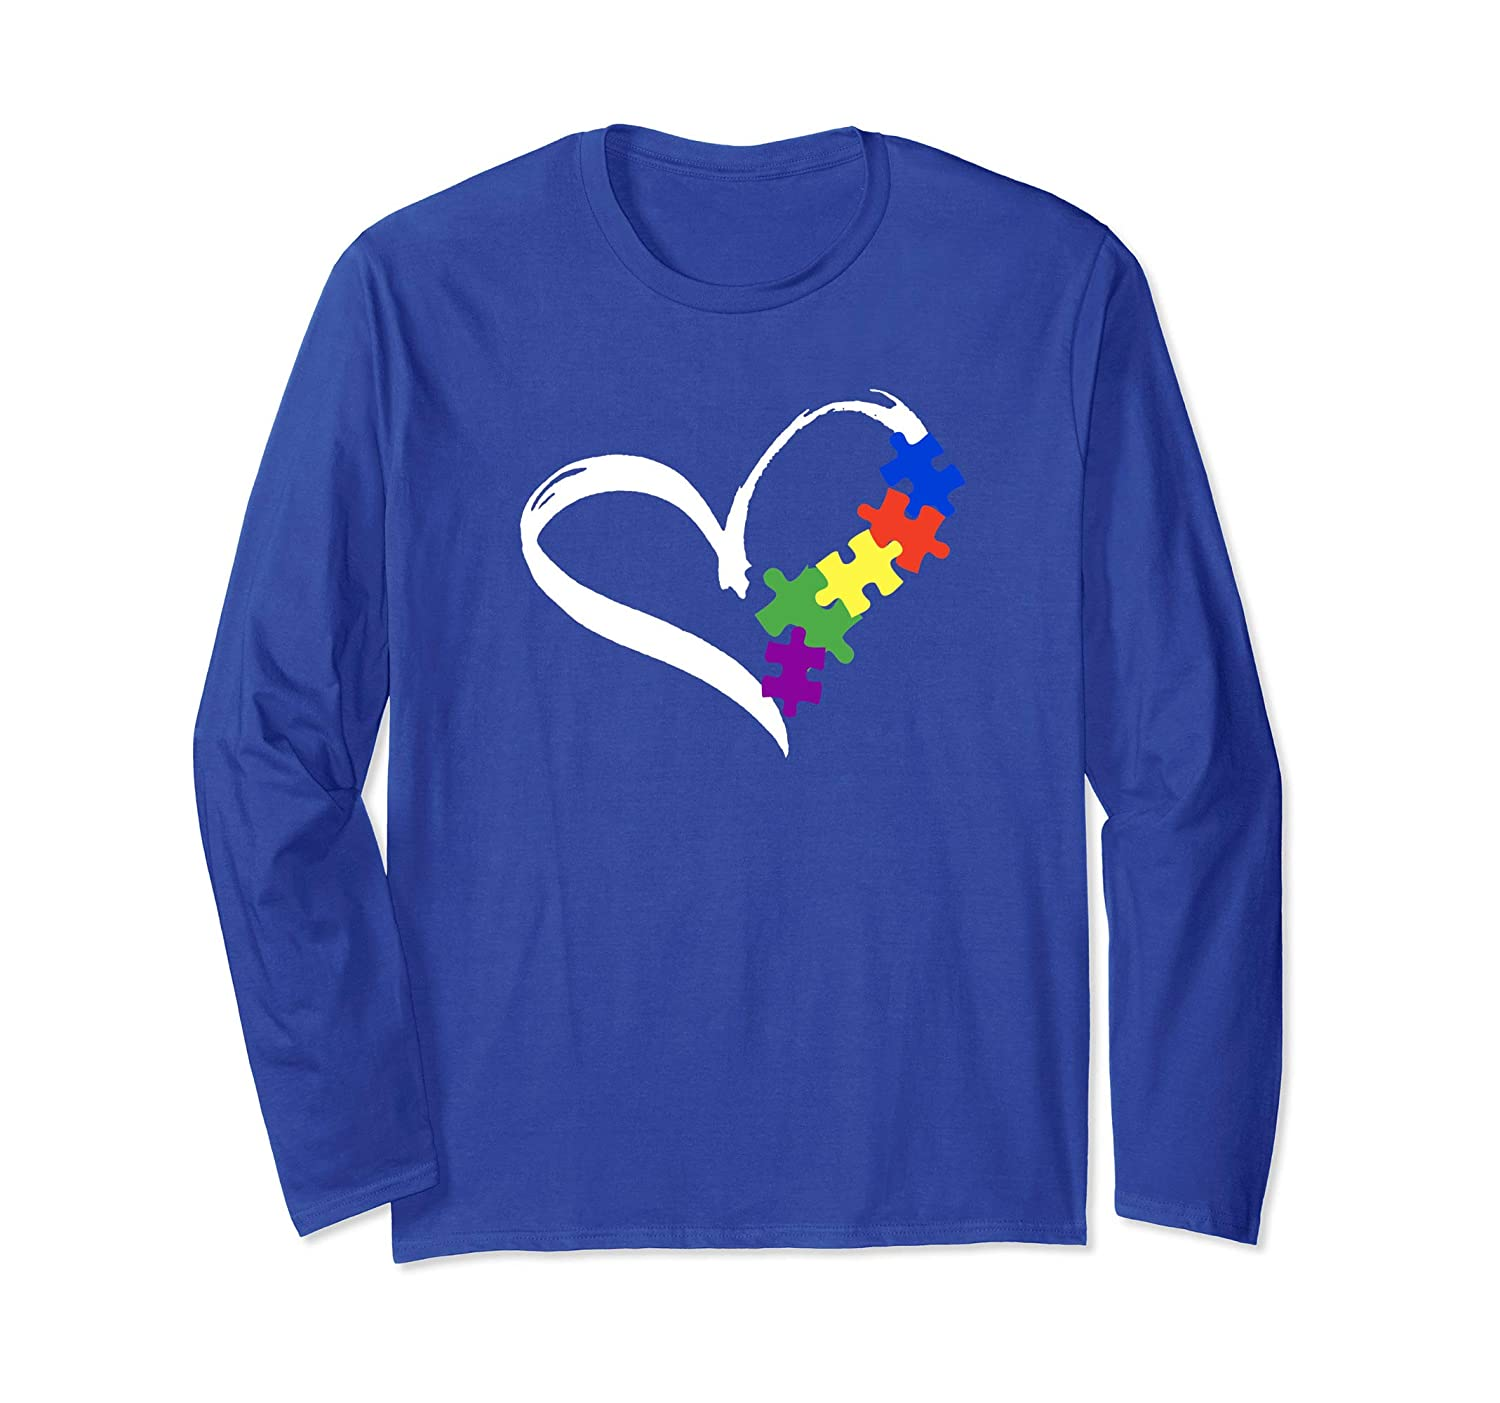 Autism Puzzle Long Sleeve T-Shirt Love Long Sleeve women men-Yolotee